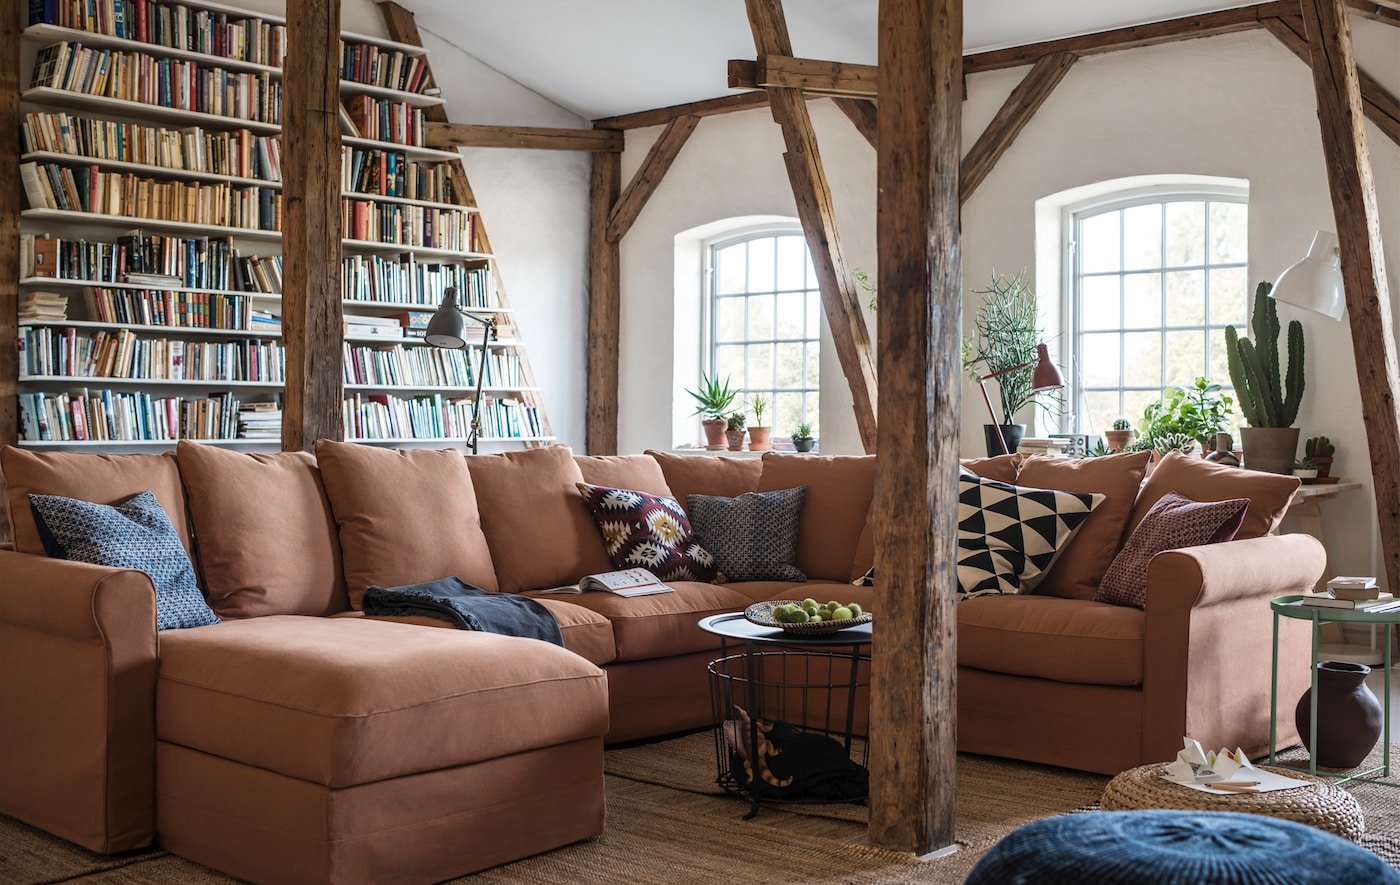 A large U-shaped sofa in a room with exposed beams.